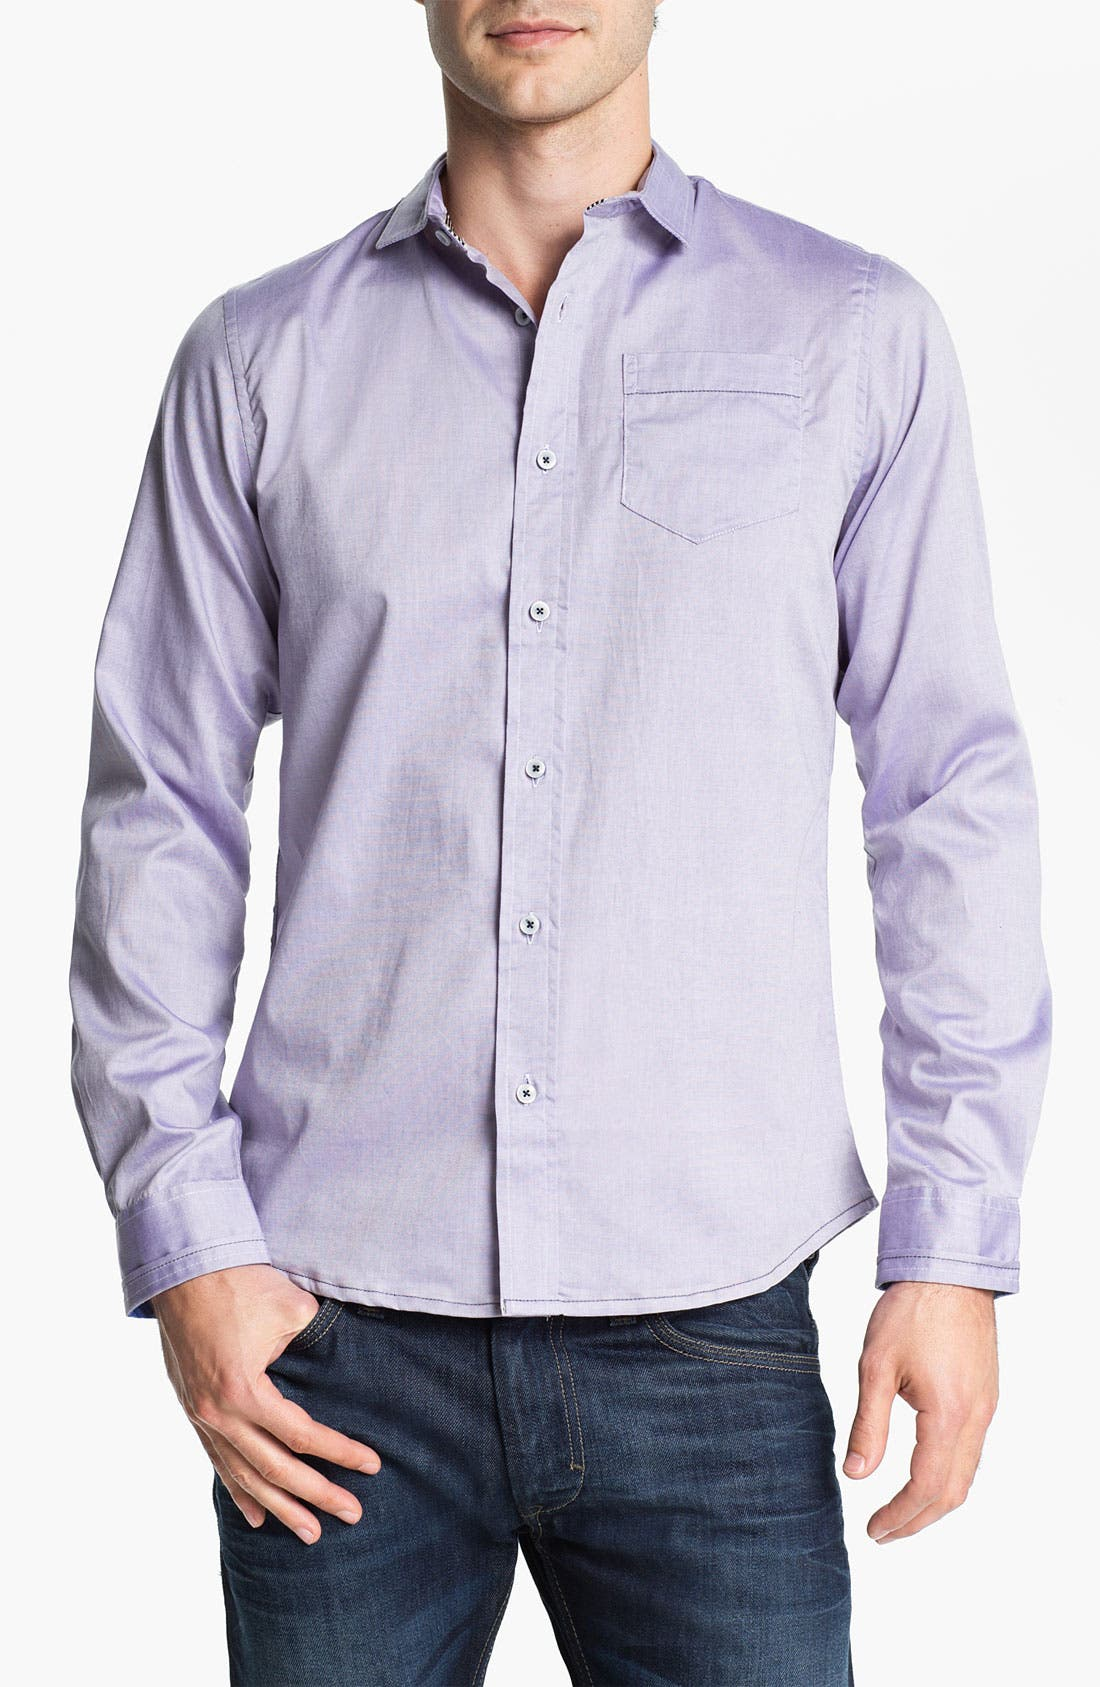 Alternate Image 1 Selected - Descendant of Thieves Oxford Woven Shirt